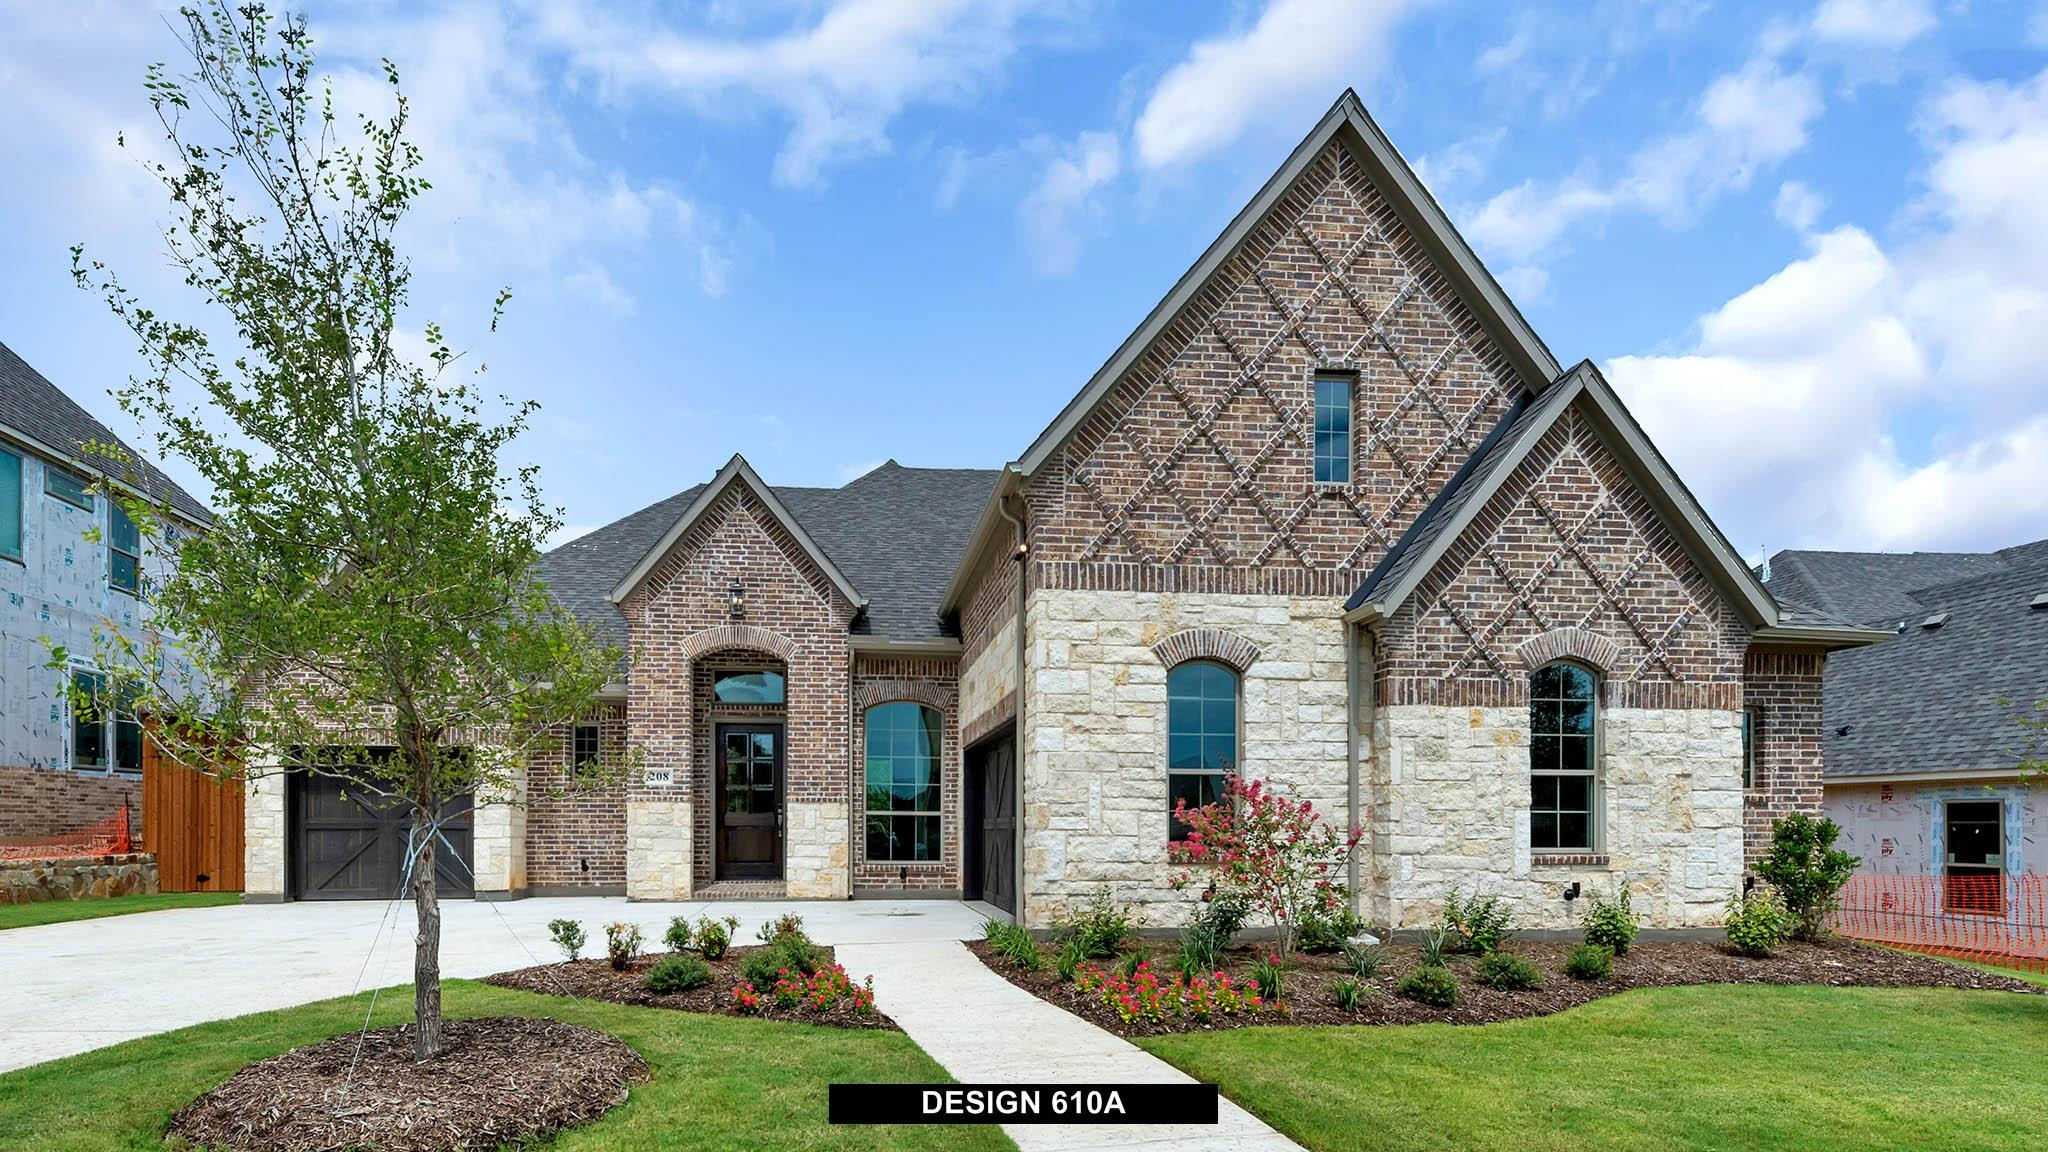 Single Family for Sale at 610a 208 Chisholm Trail Highland Village, Texas 75077 United States